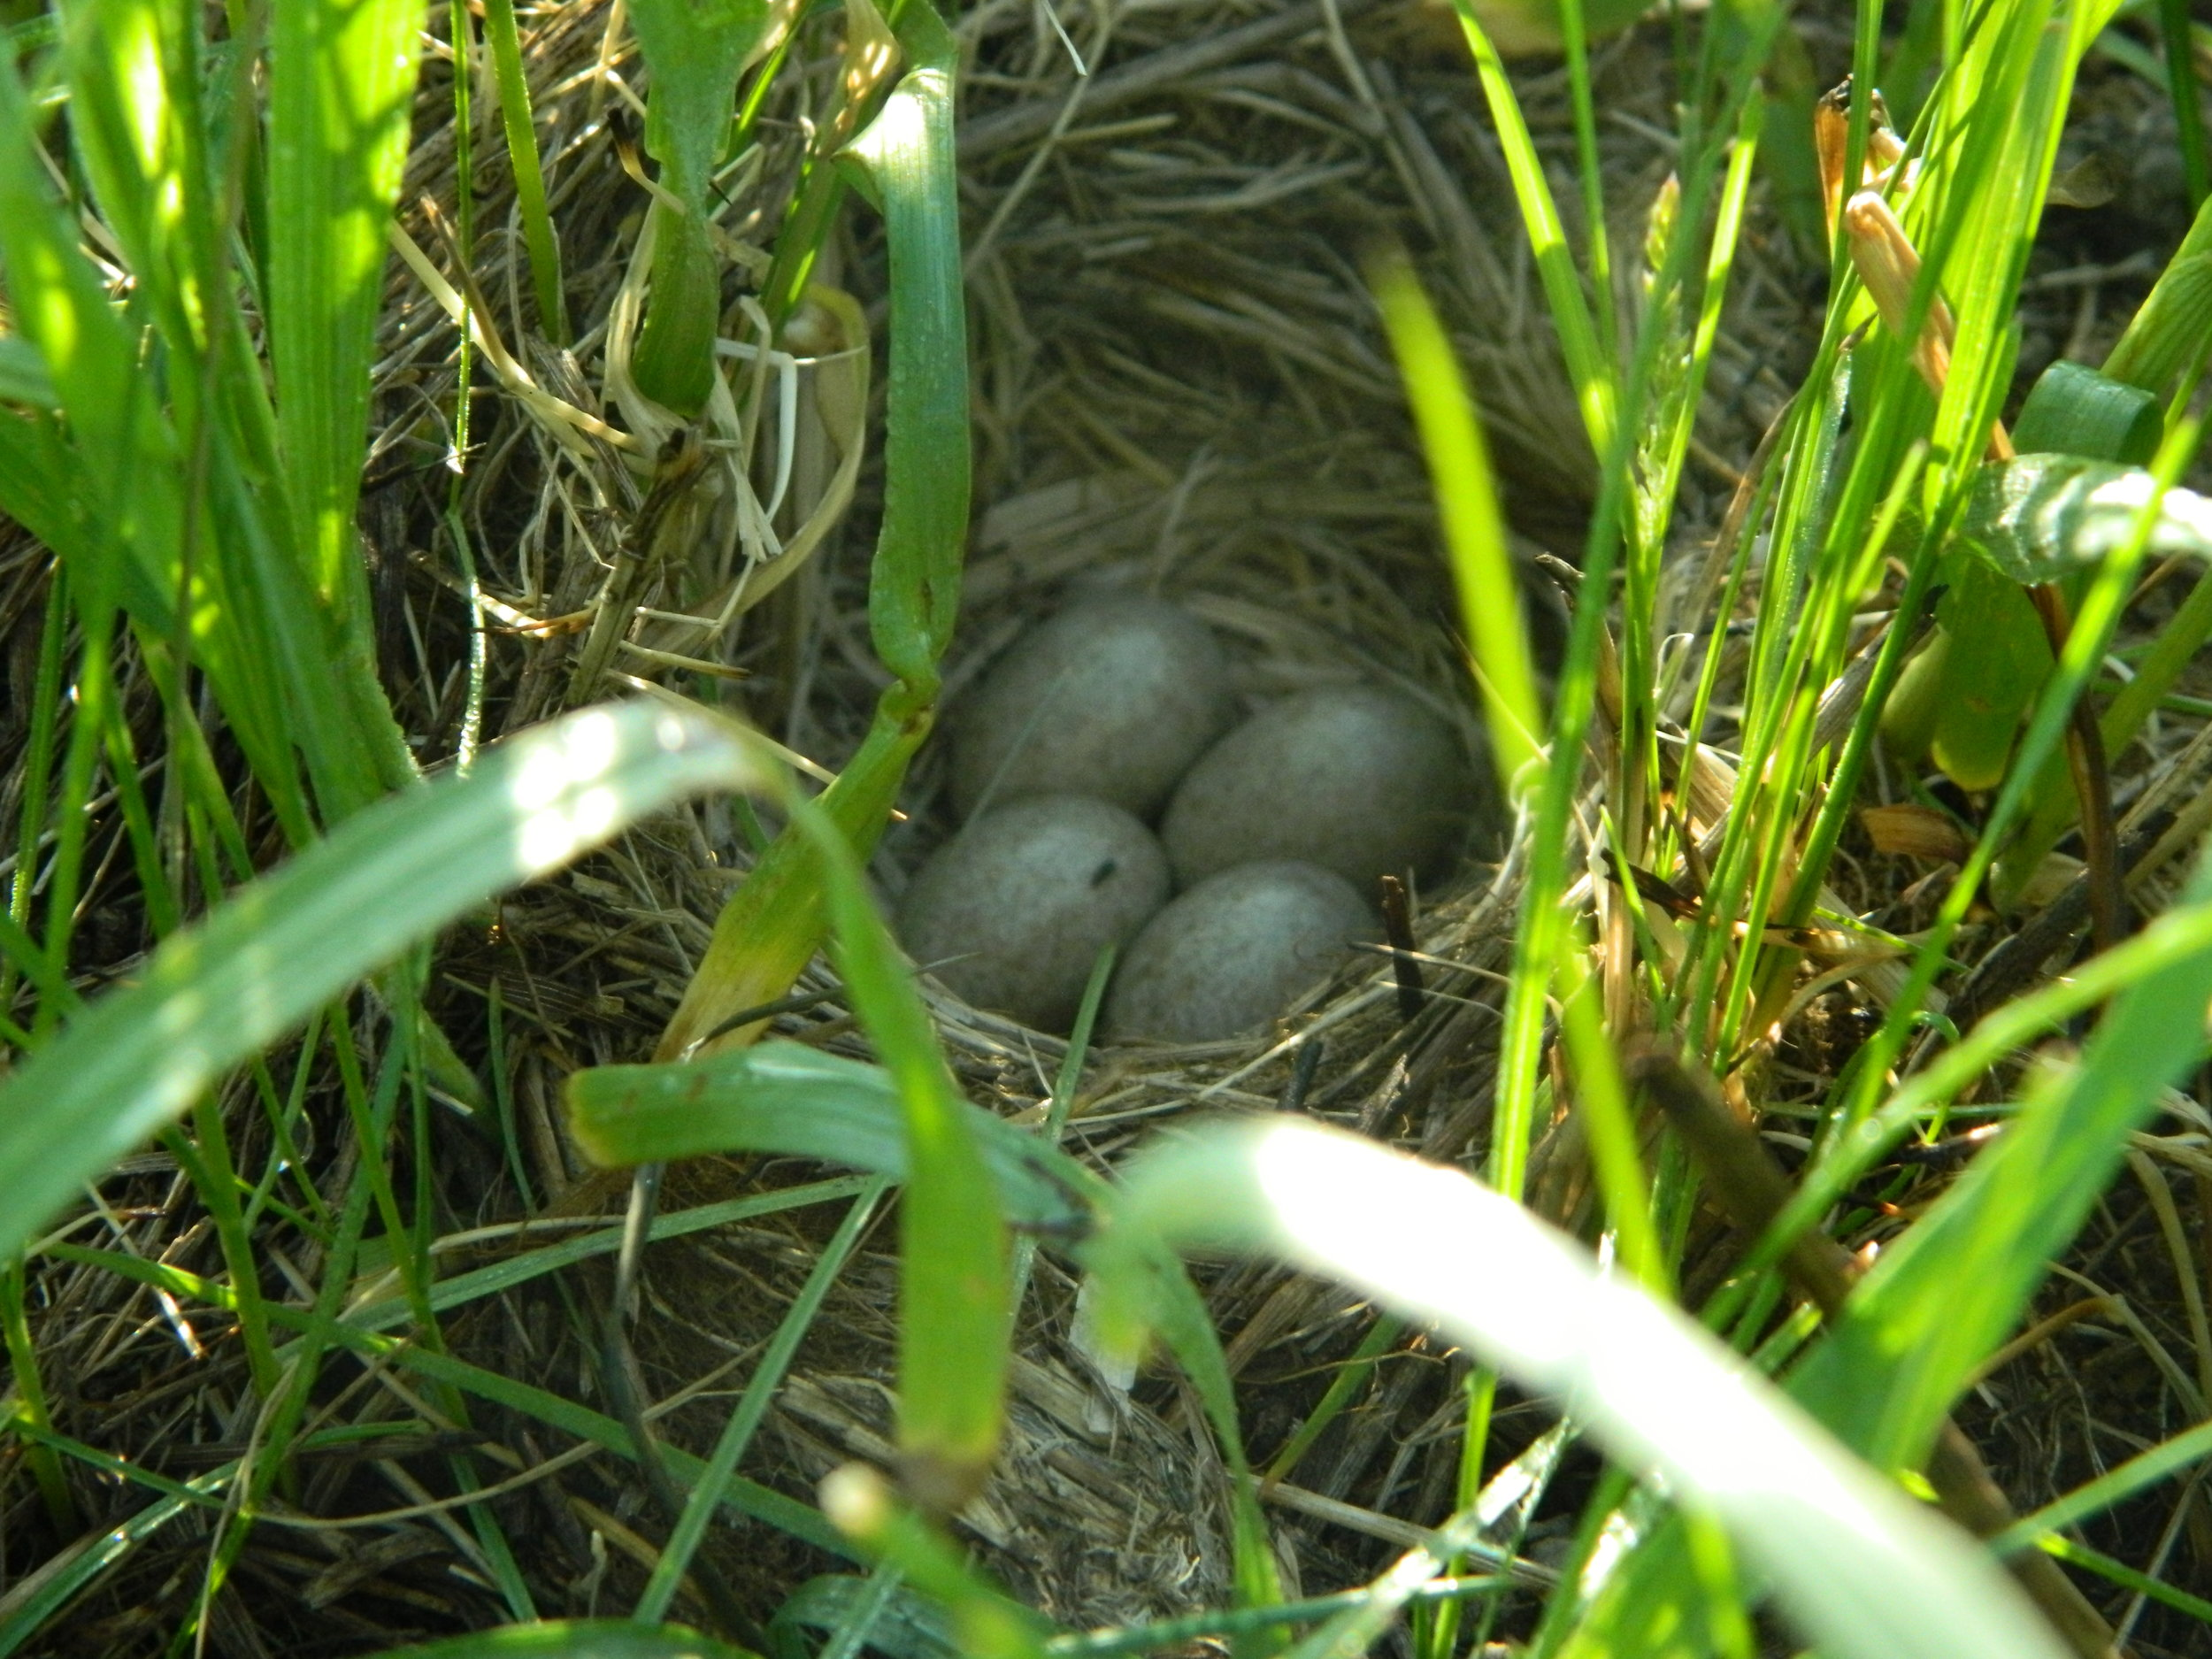 Horned lark eggs tucked into their nest amongst the grasses. Photo by Carolyn Byers